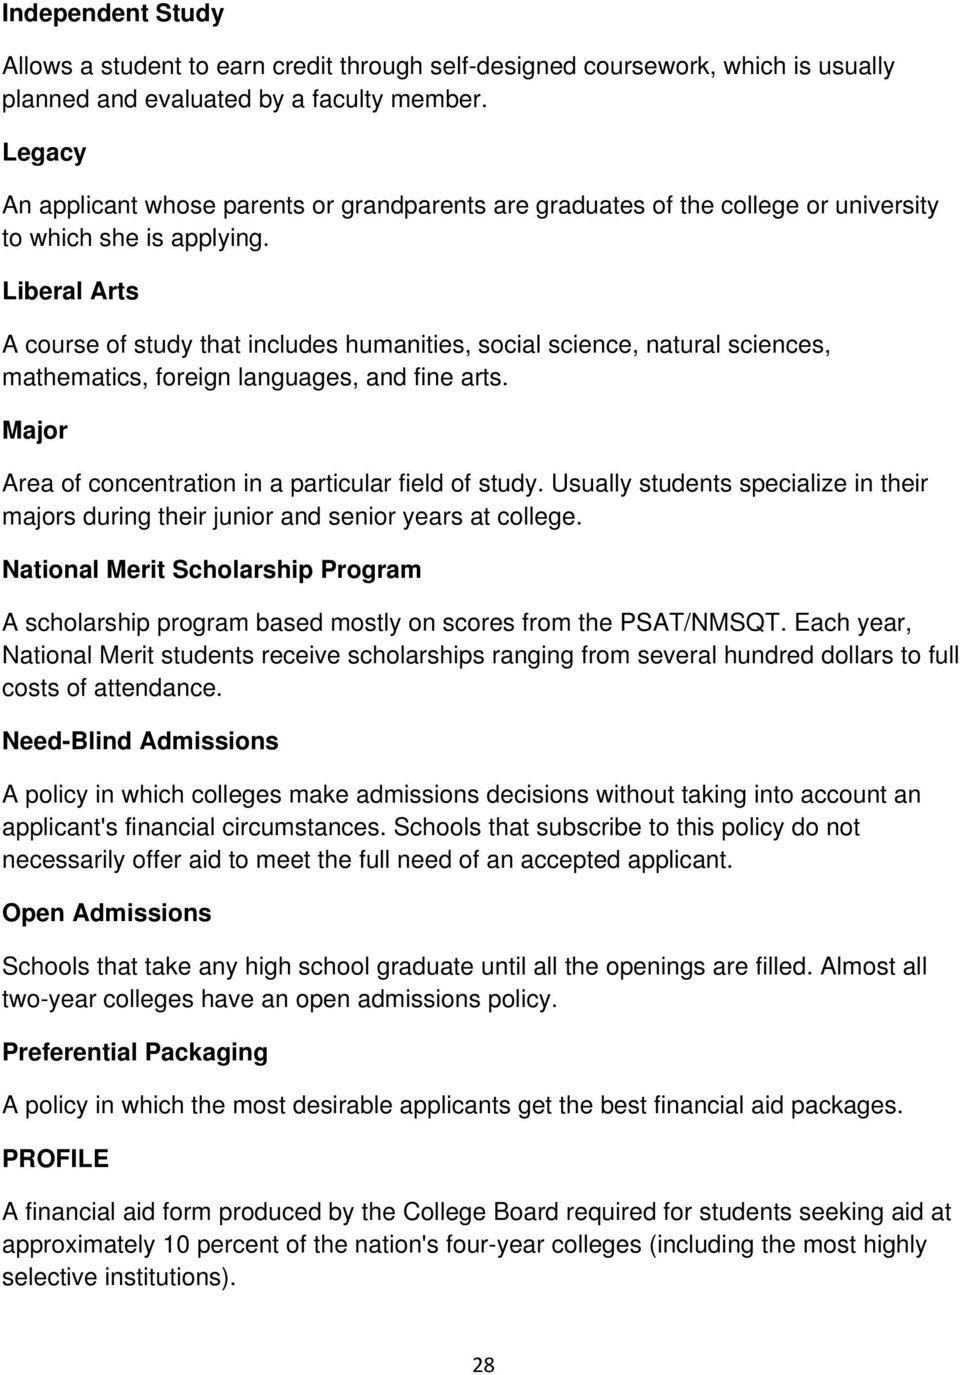 Liberal Arts A course of study that includes humanities, social science, natural sciences, mathematics, foreign languages, and fine arts. Major Area of concentration in a particular field of study.